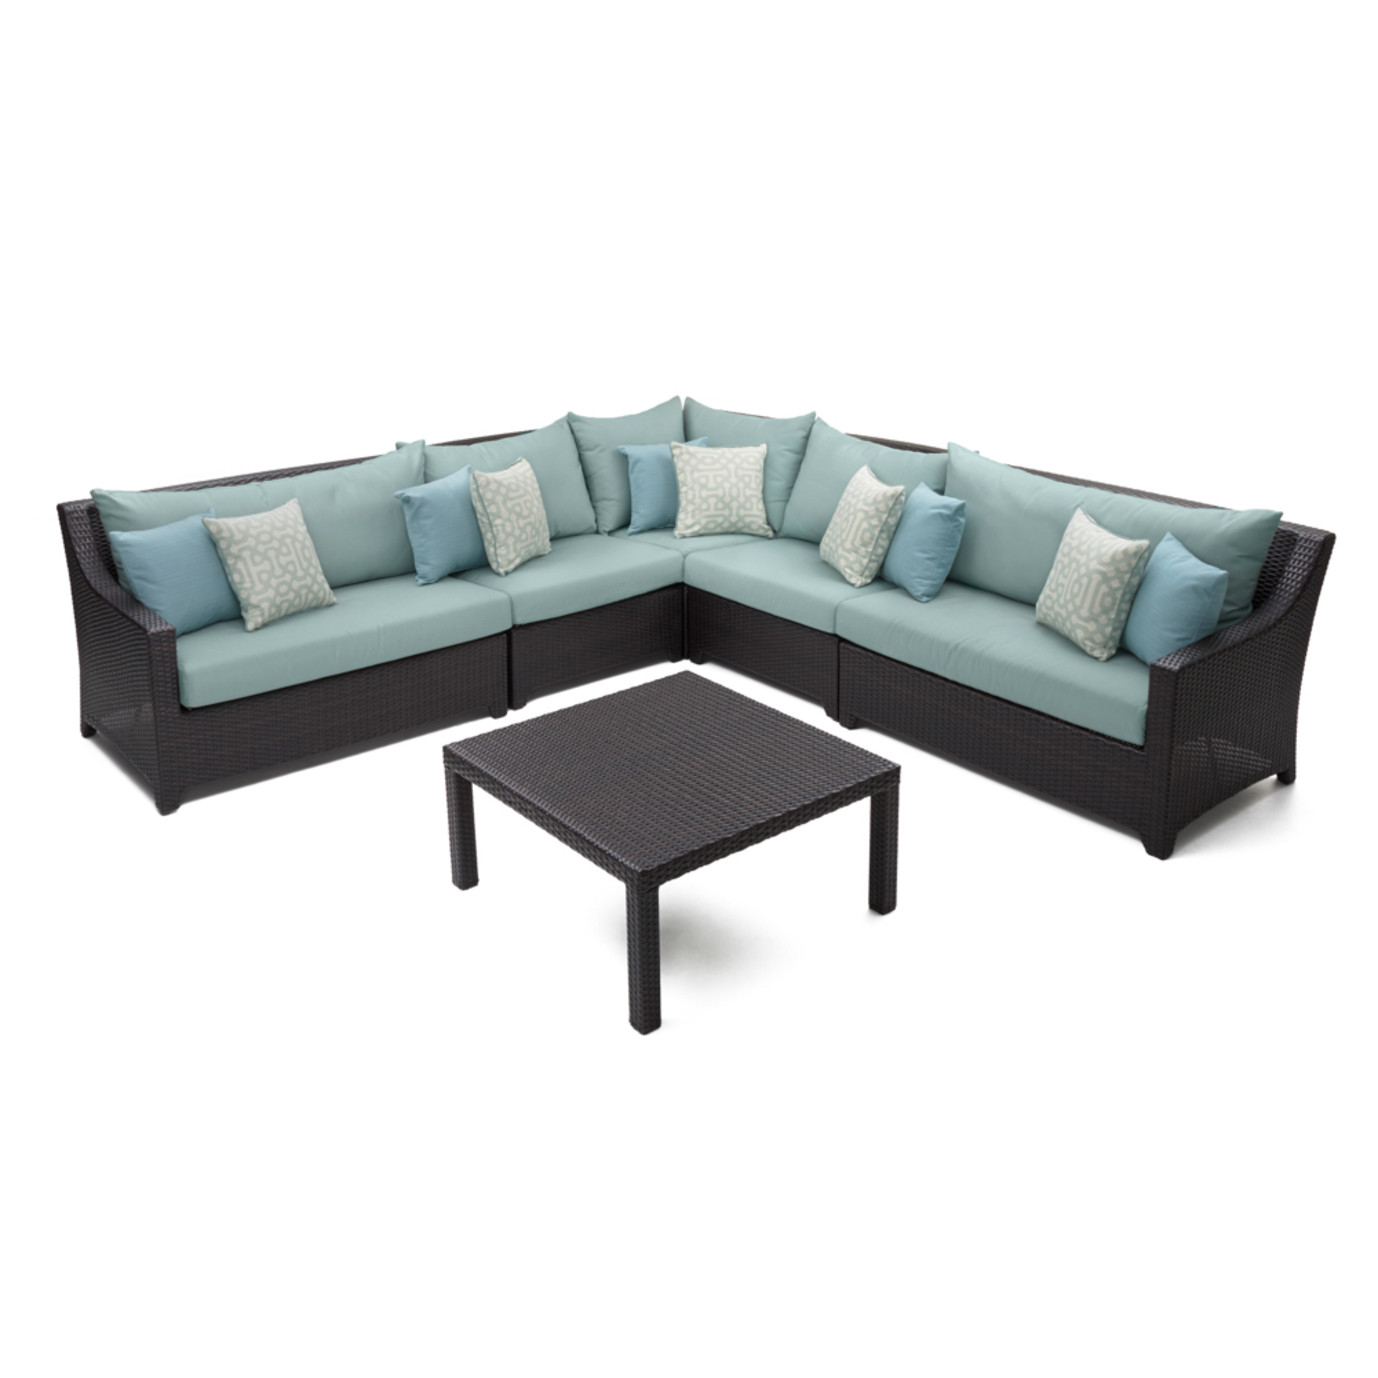 Deco™ 6 Piece Sectional and Table - Spa Blue